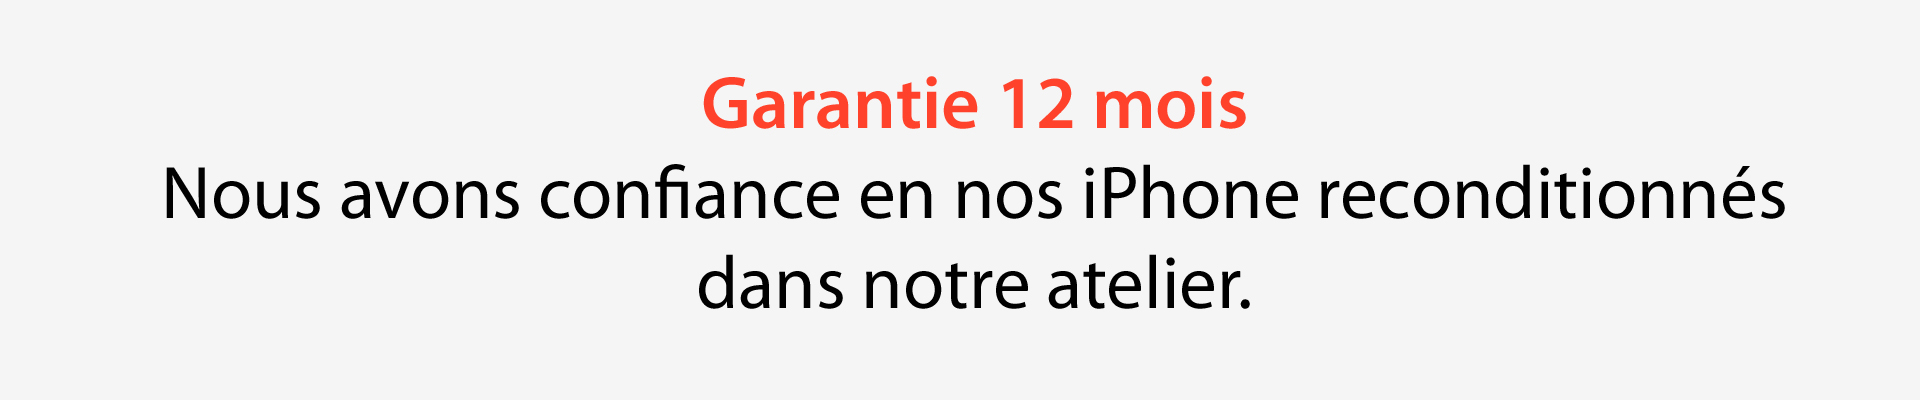 iPhone garantie 12 mois